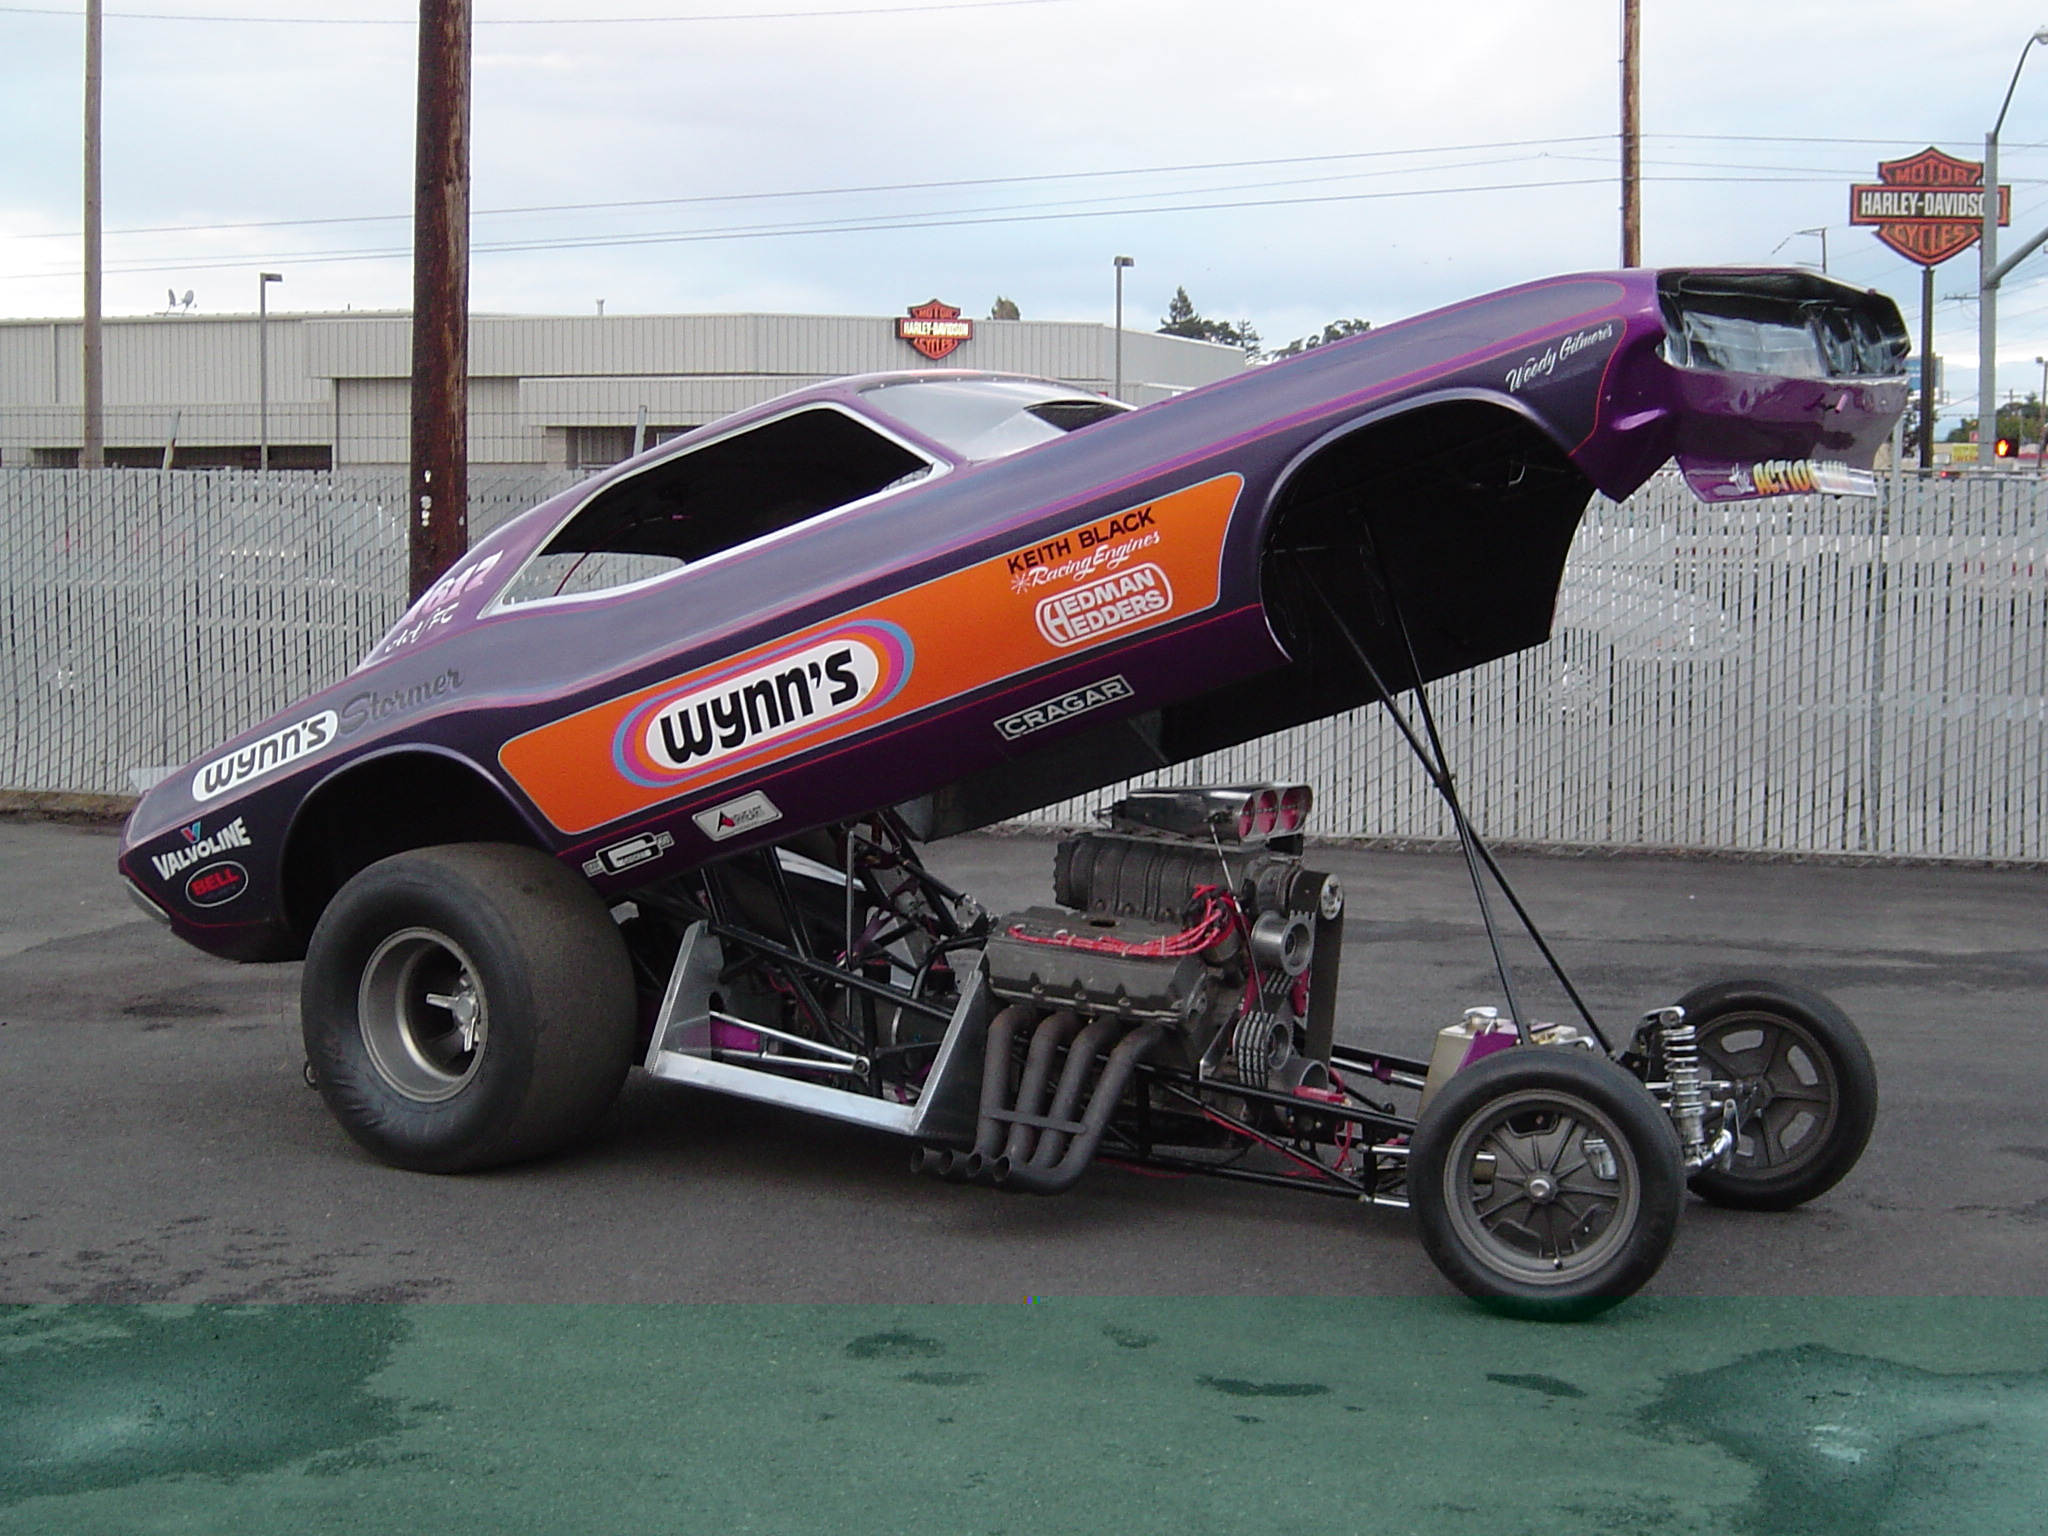 SOLD!!)1970 Top Fuel WYNN'S Stormer Challenger Funnycar (SOLD!!)